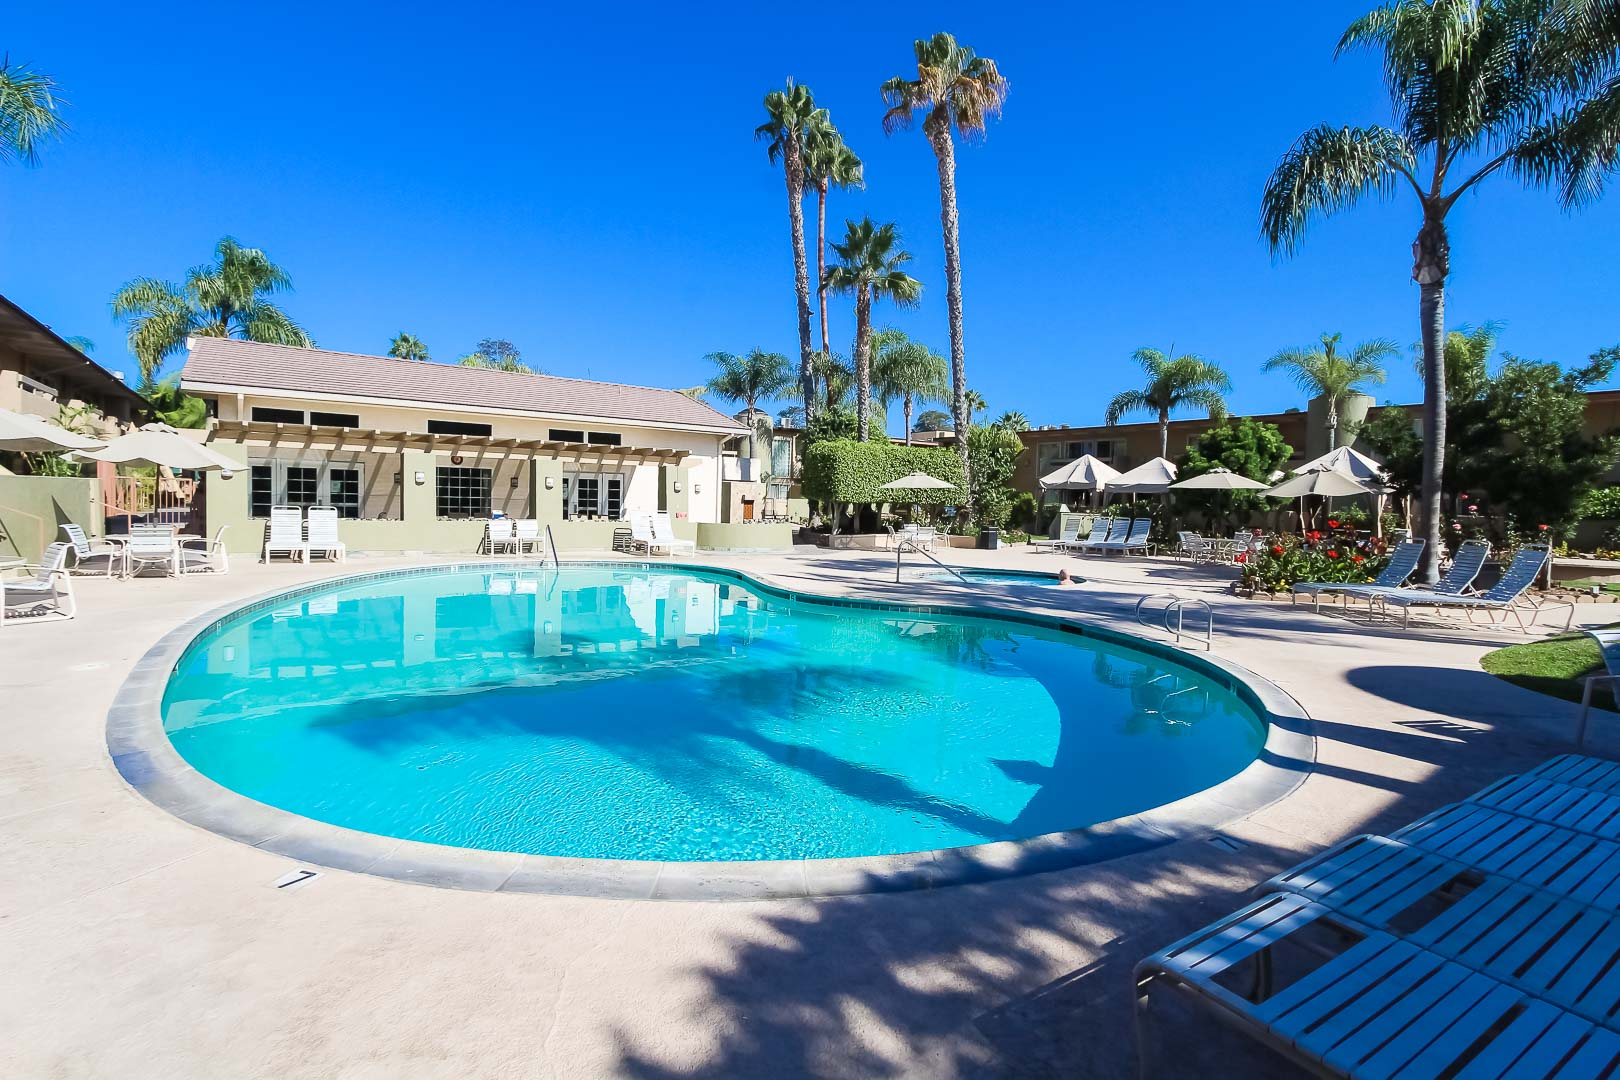 Clear skies and a clean outdoor swimming pool at VRI's Winner Circle Resort in California.